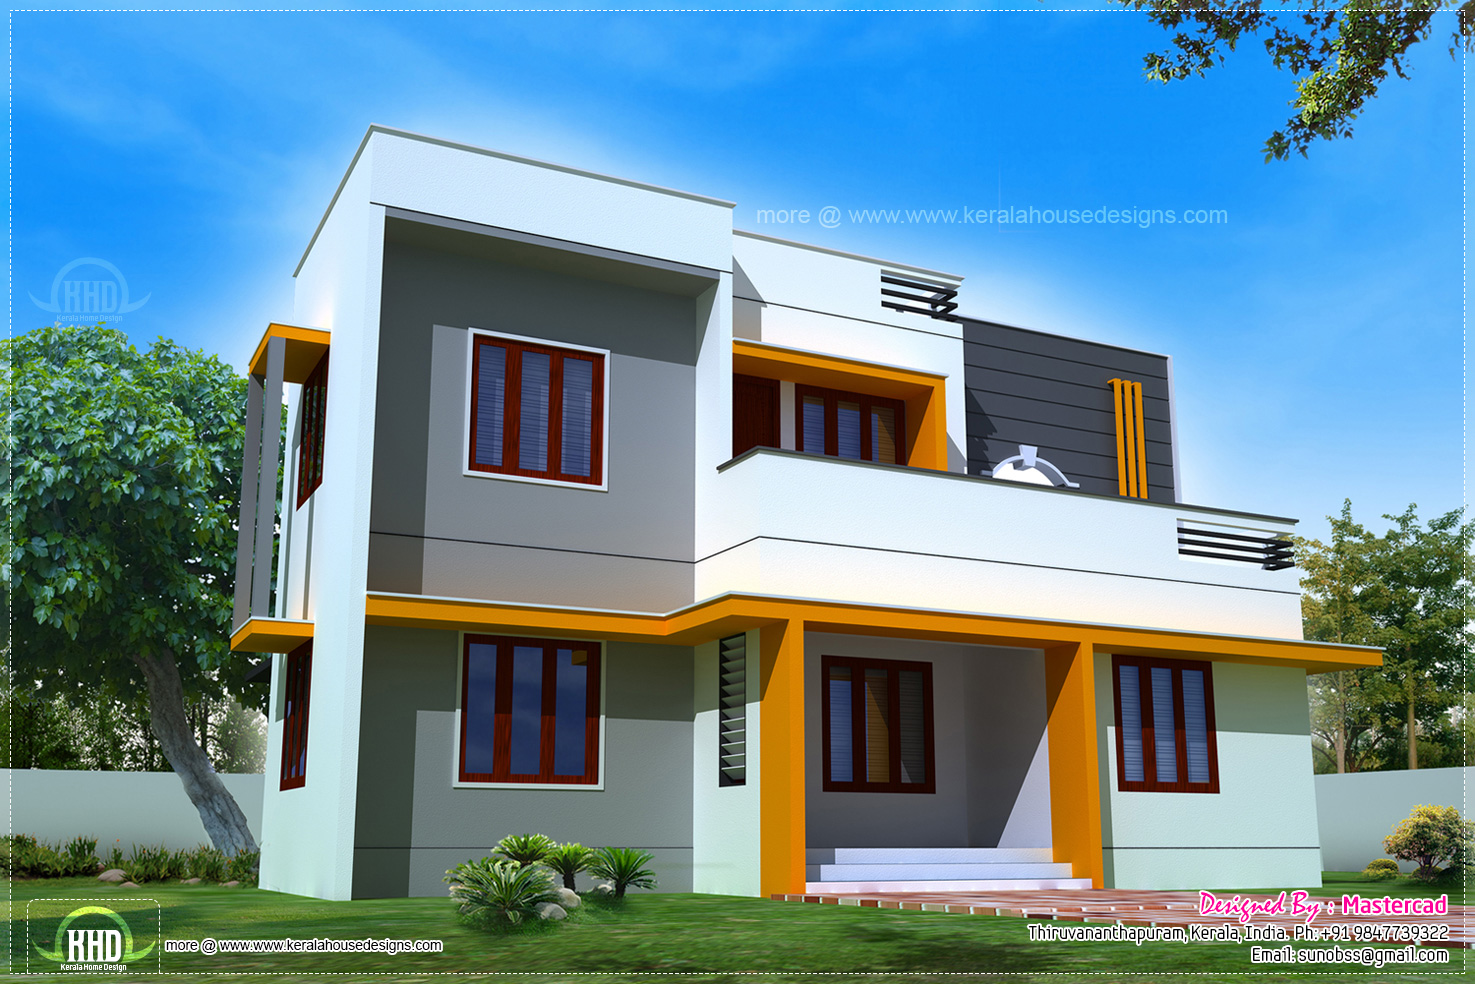 Kerala Home Design And Floor Plans 1484 South